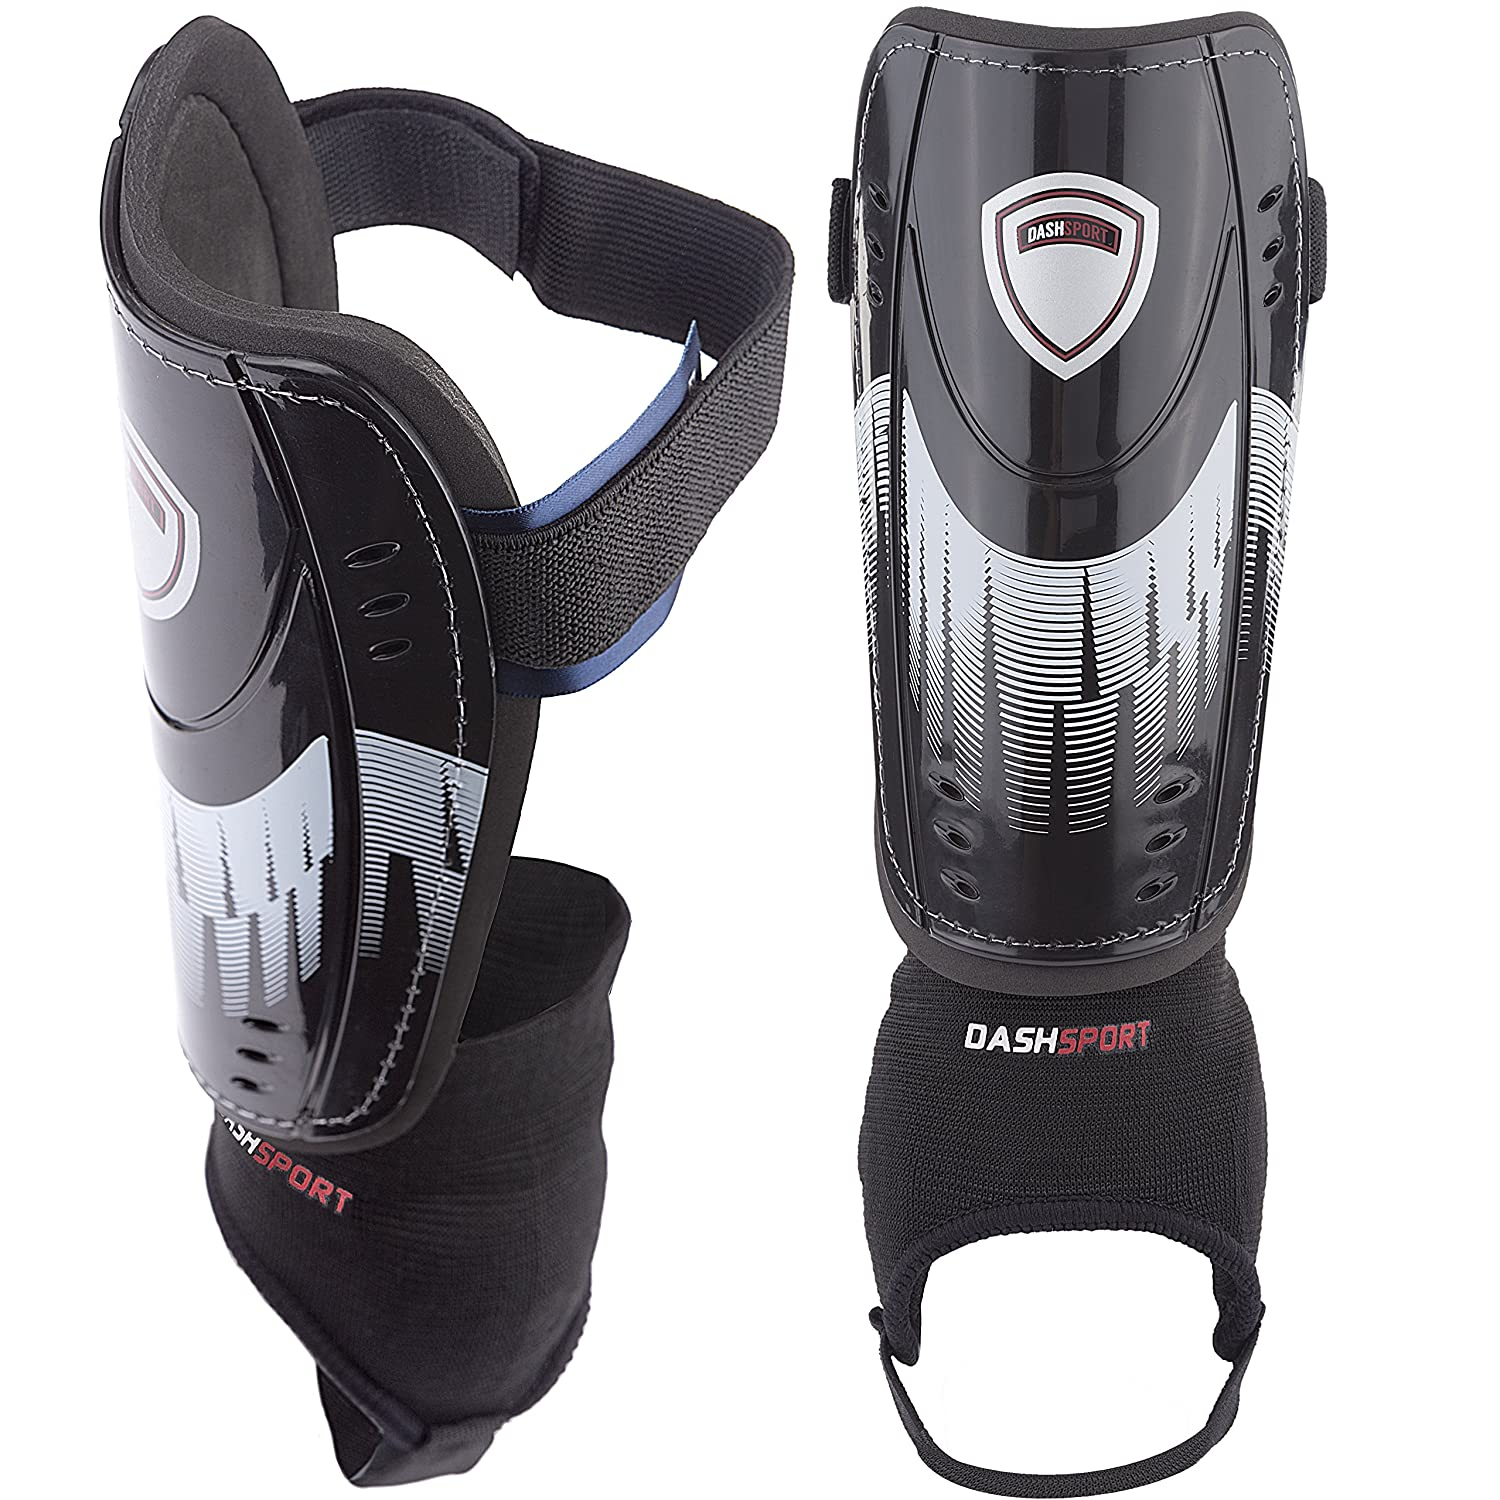 Soccer Shin Guards – ユースサイズ – by dashsport – Bestキッズ用サッカー機器with足首袖 – Great for Boys and Girls B01EE9EZ8A Medium 4'7 5'3|ホワイト ホワイト Medium 4'7 5'3